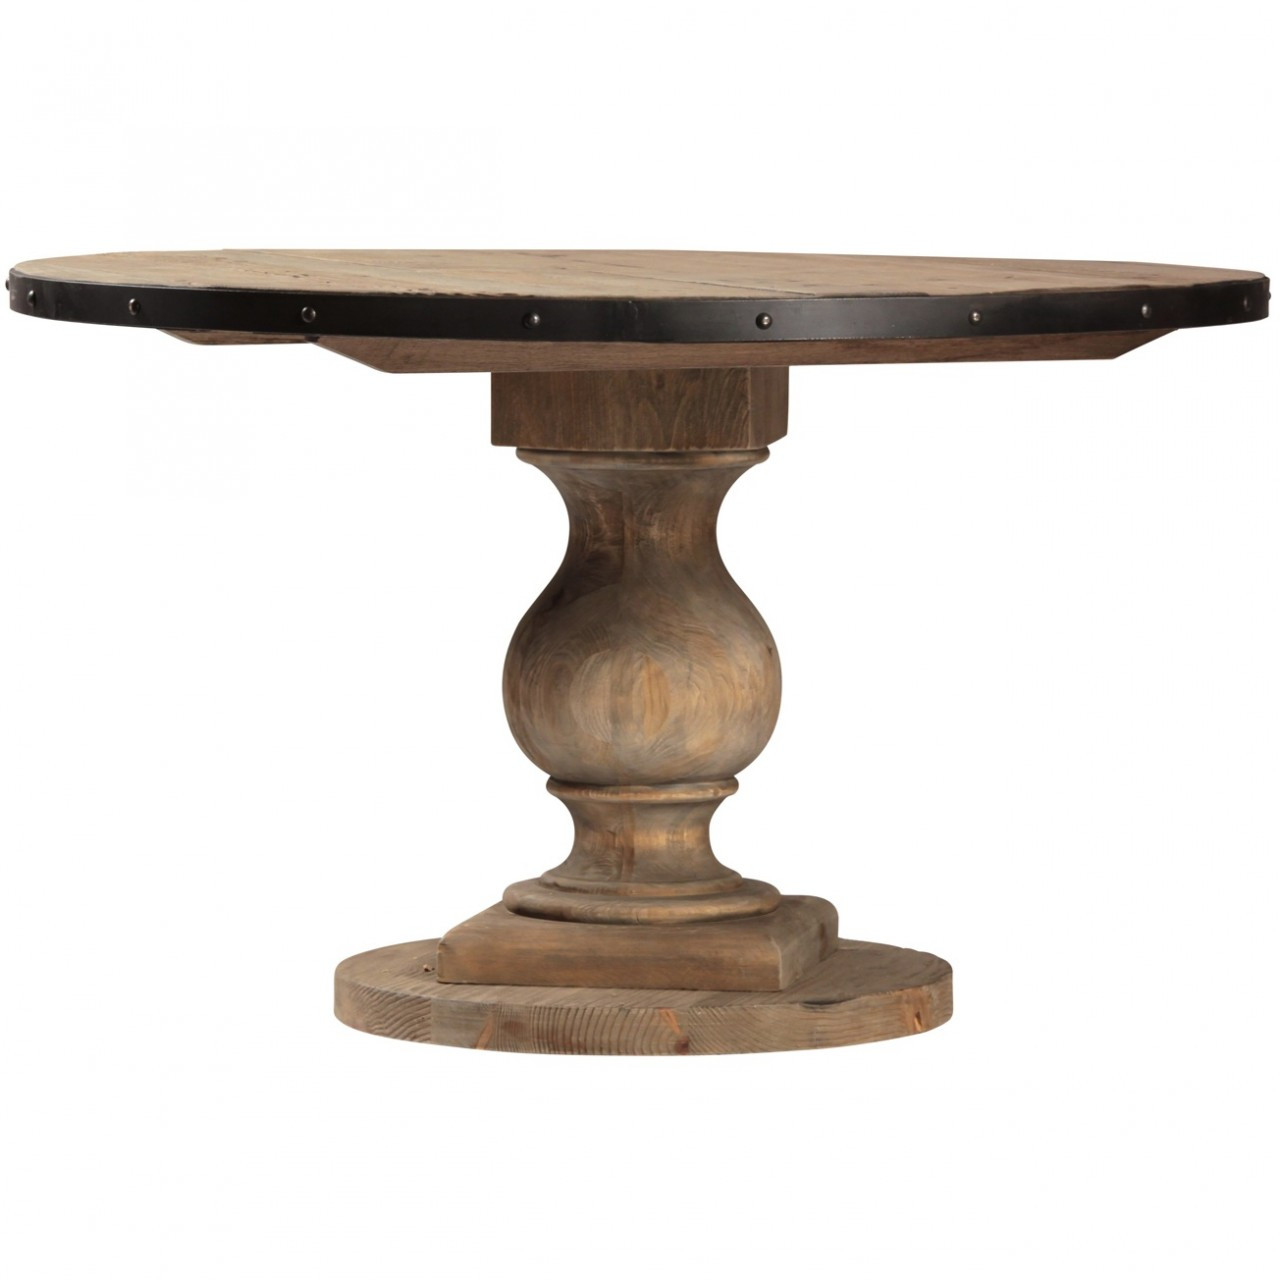 Dining table dining table pedestals base for Pedestal dining table